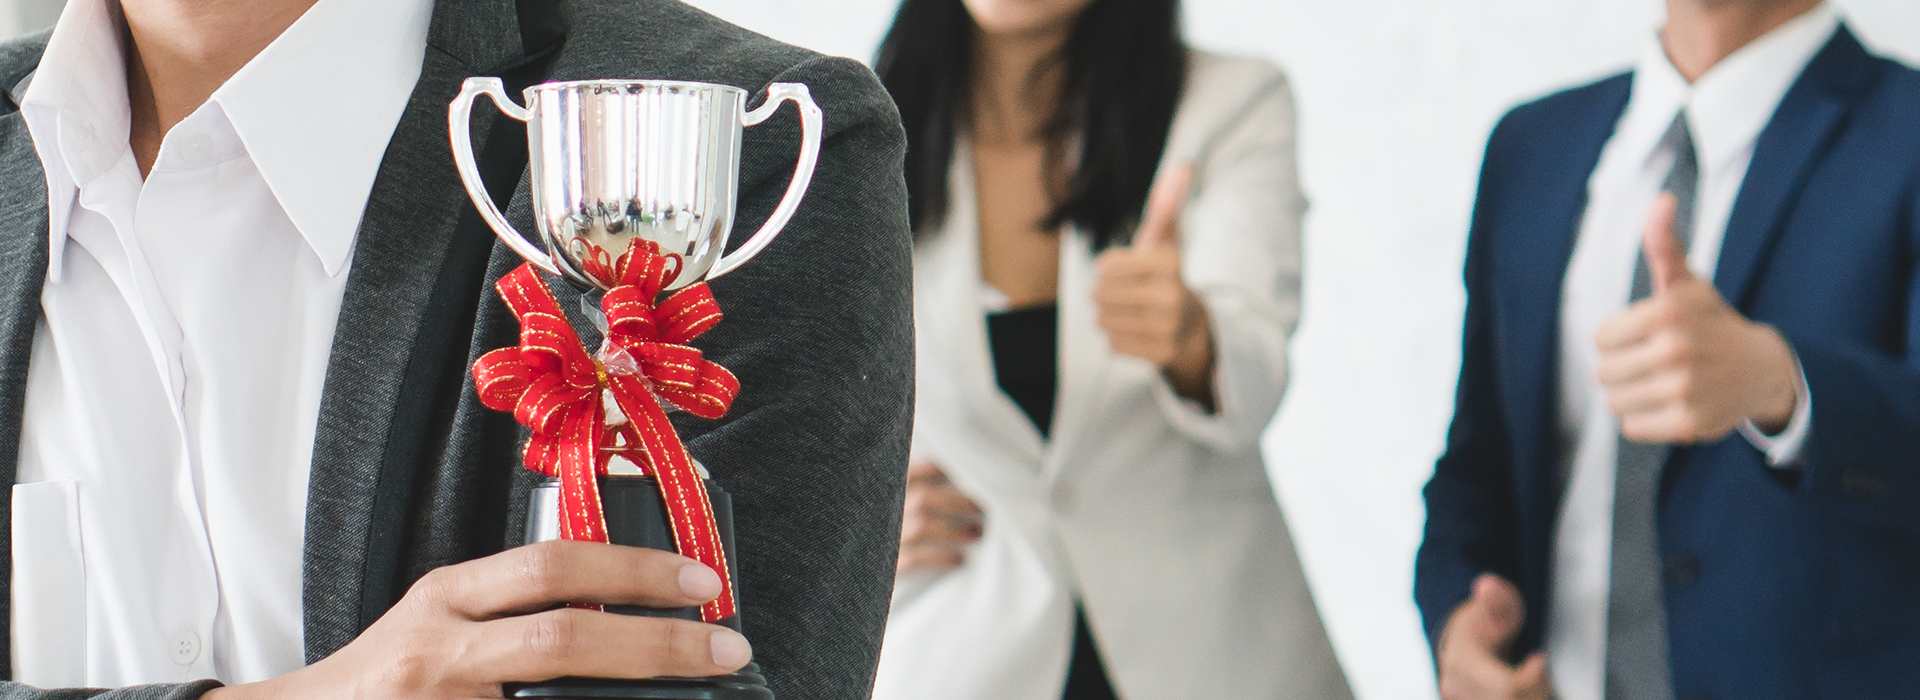 How to effectively recognize your employees